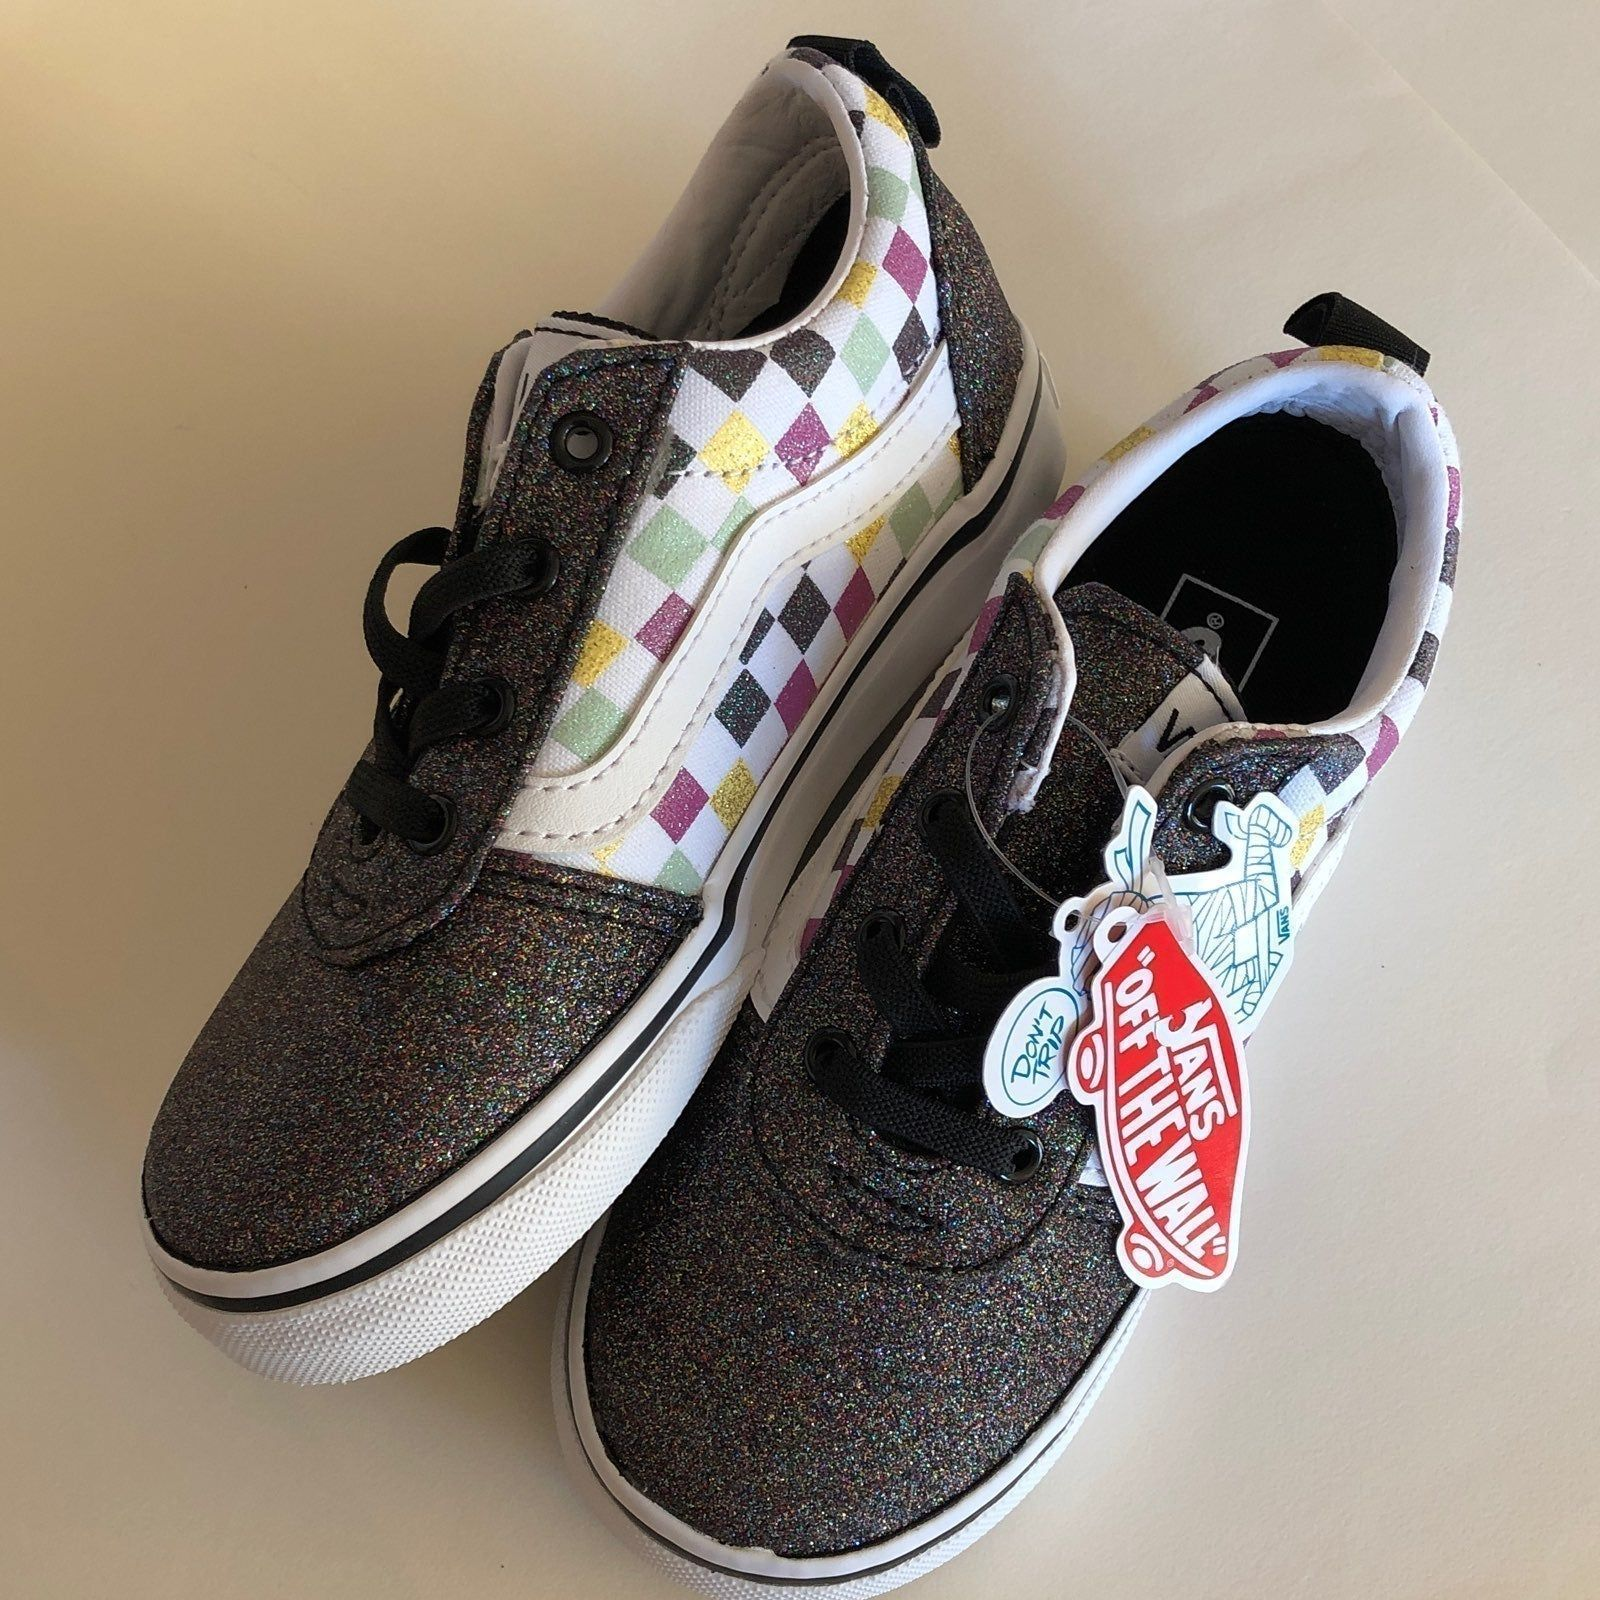 Brand new. Very cute VANS shoes with